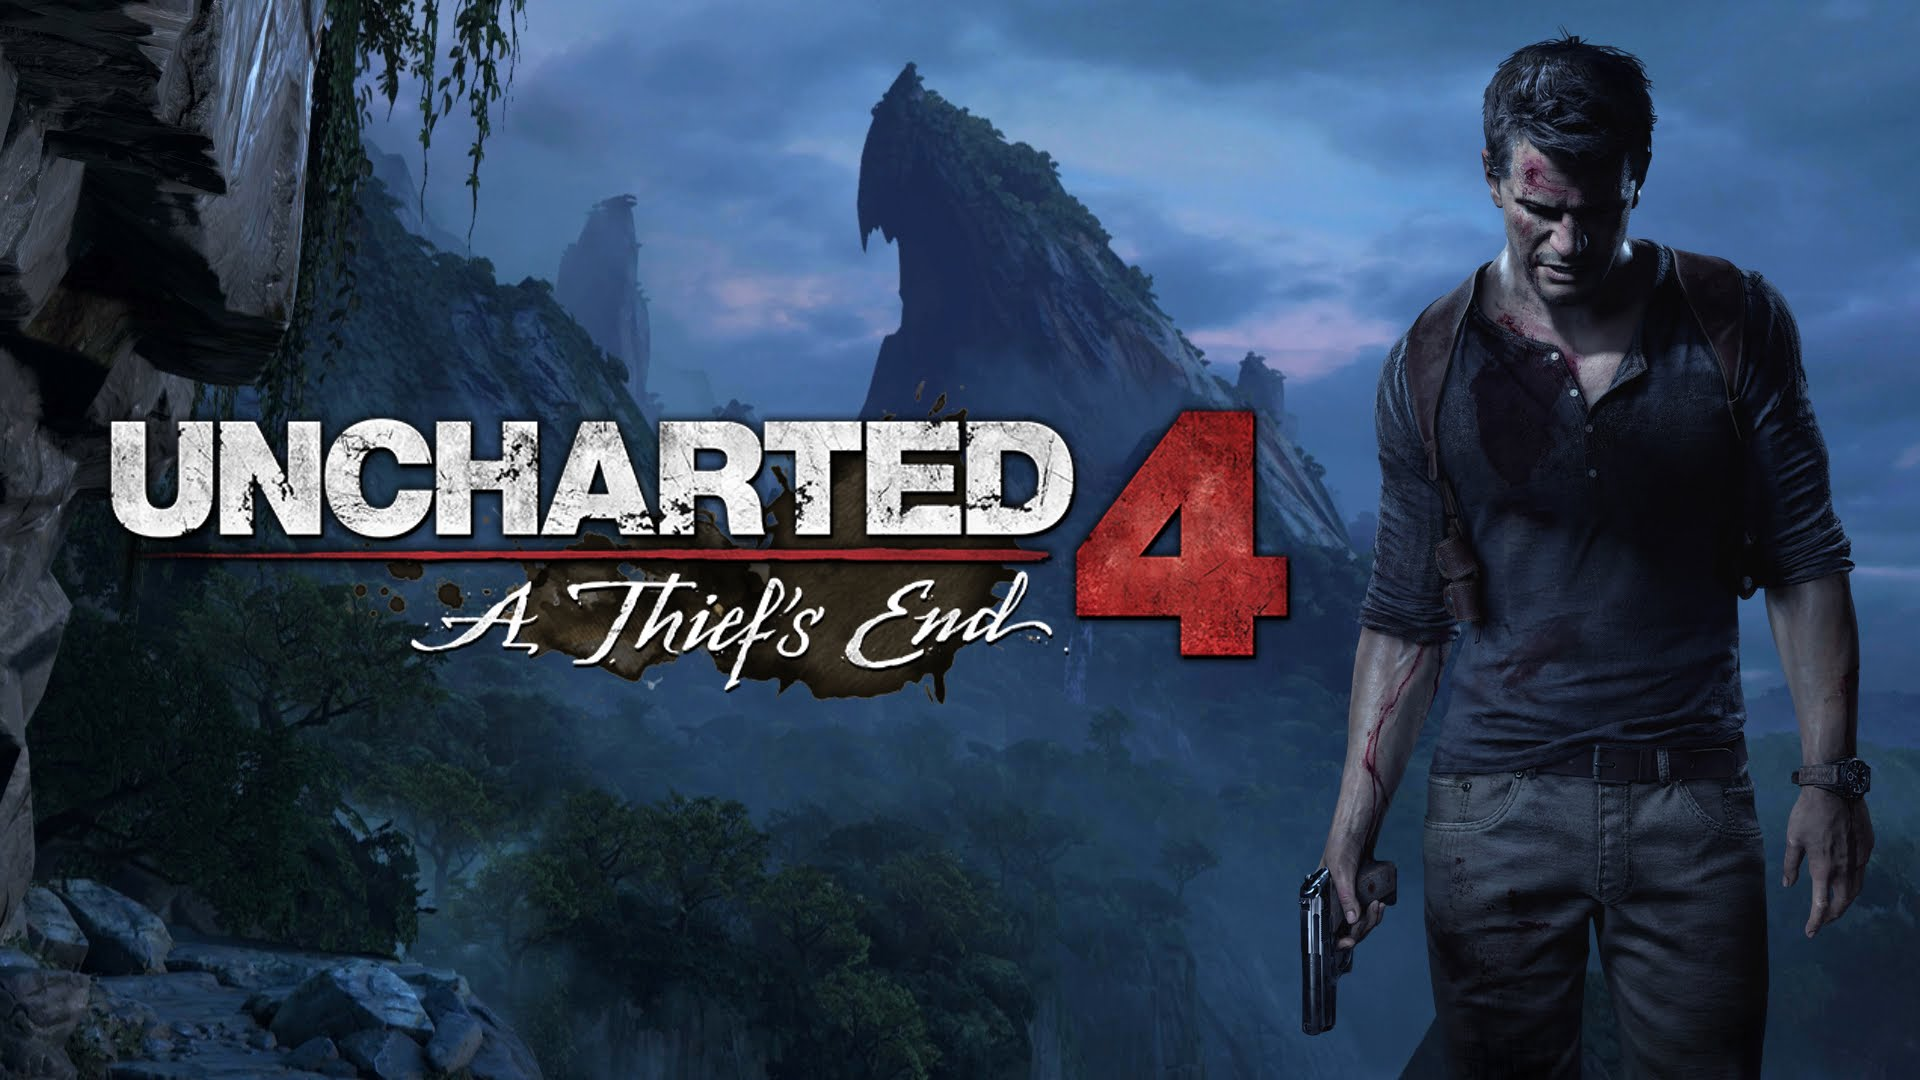 http://musga.fr/wp-content/uploads/2015/10/Uncharted-4.jpg